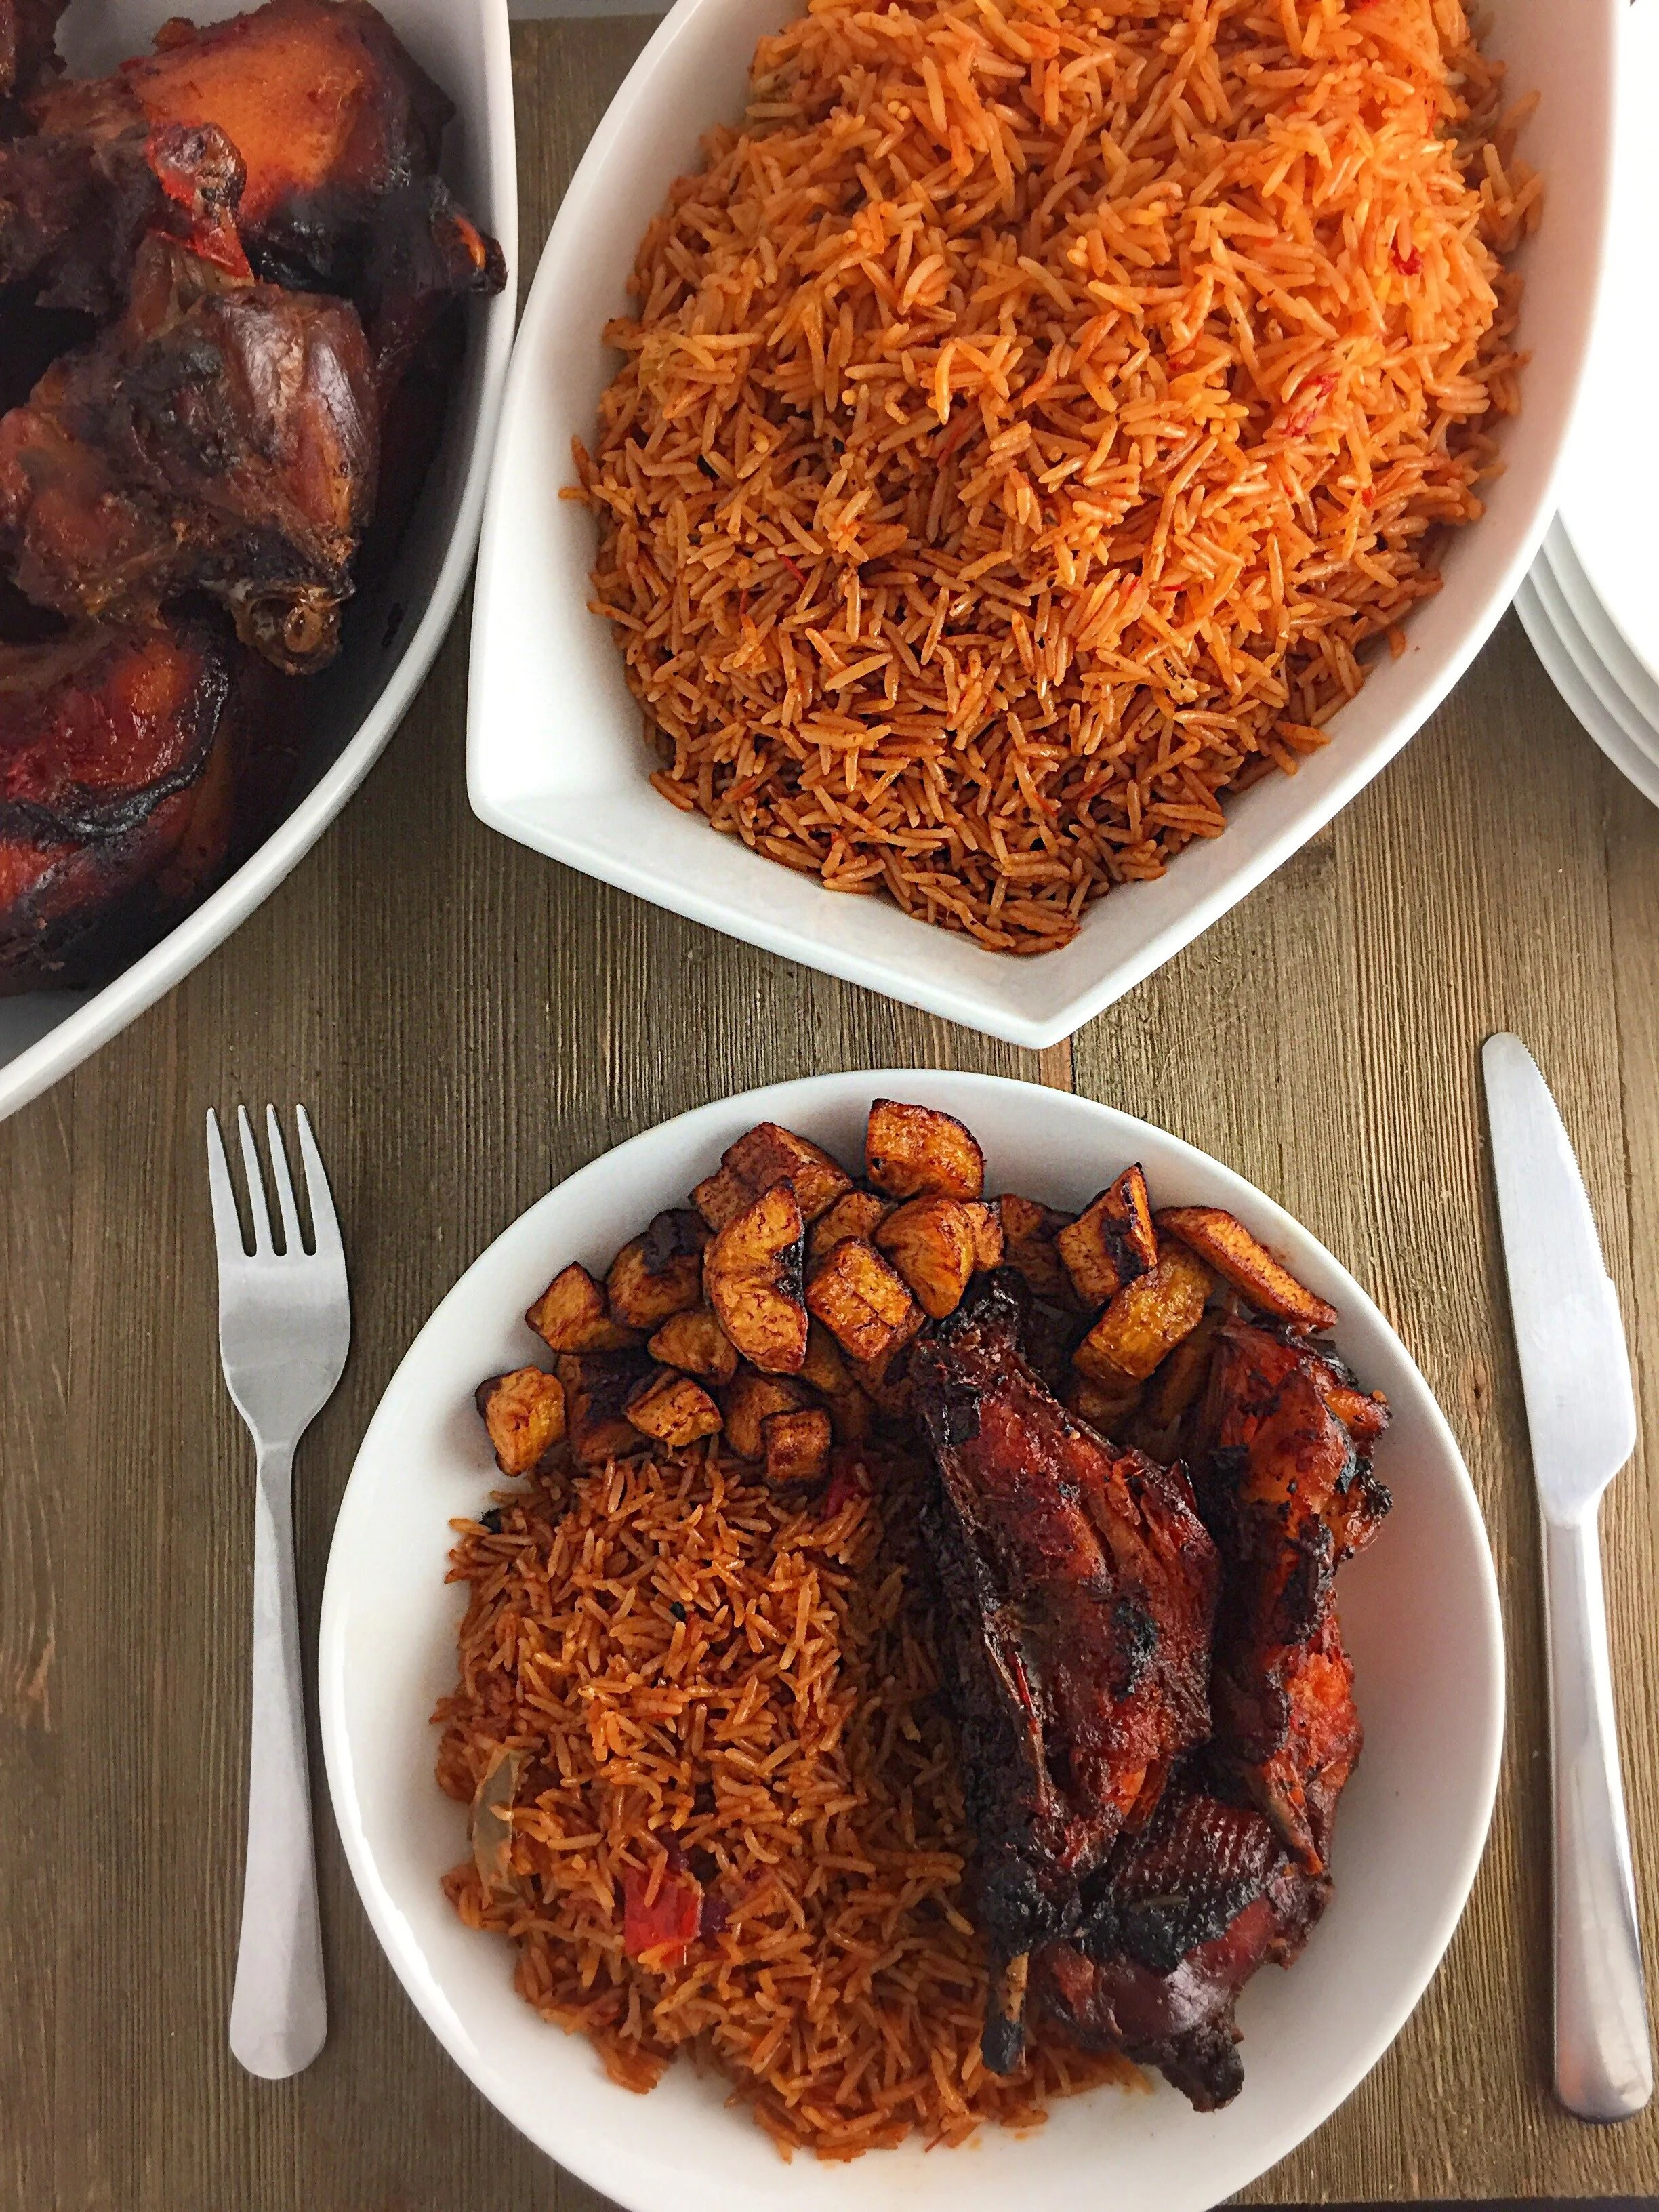 Easy peasy nigerian party jollof basmati rice my diaspora kitchen s i am also well aware that i posted a party jollof rice recipe just last week but please just humour me and after today hopefully i would keep jollof forumfinder Image collections